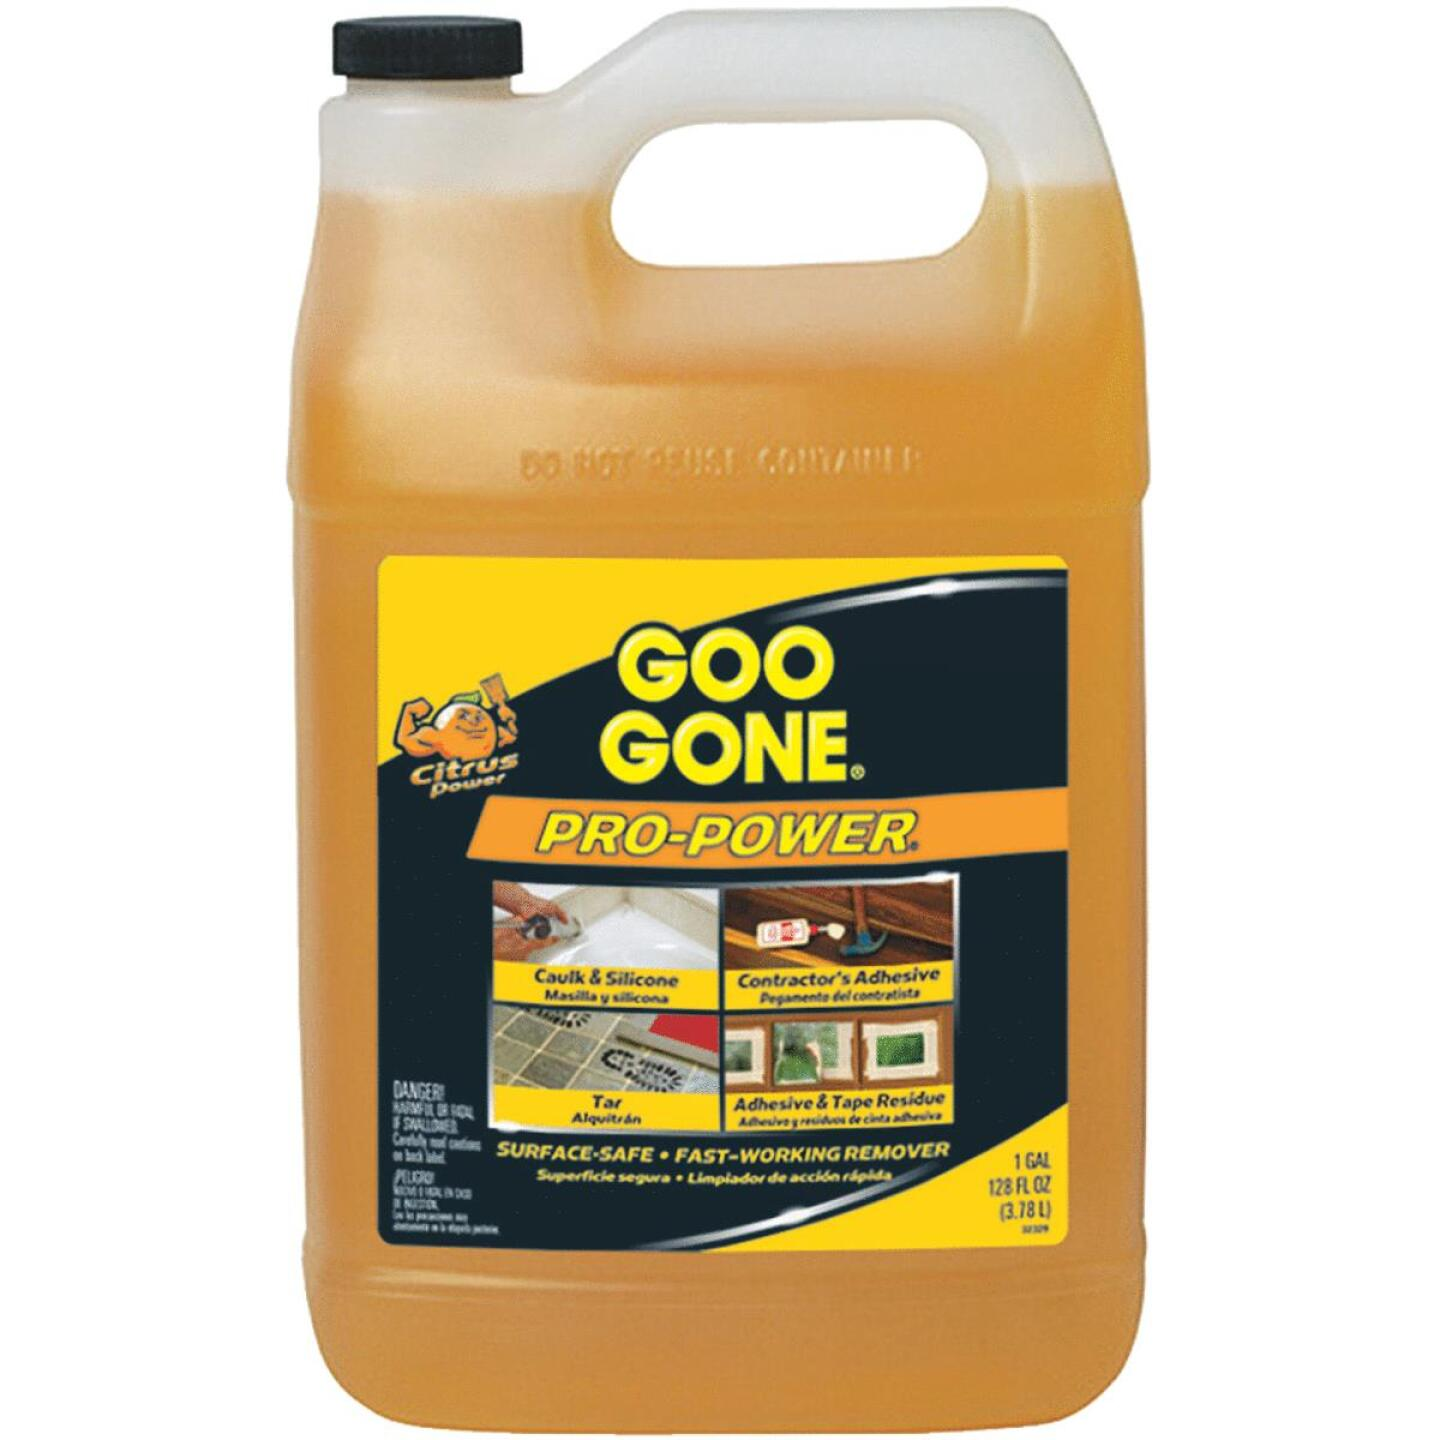 Goo Gone 1 Gal. Pro-Power Adhesive Remover Image 207